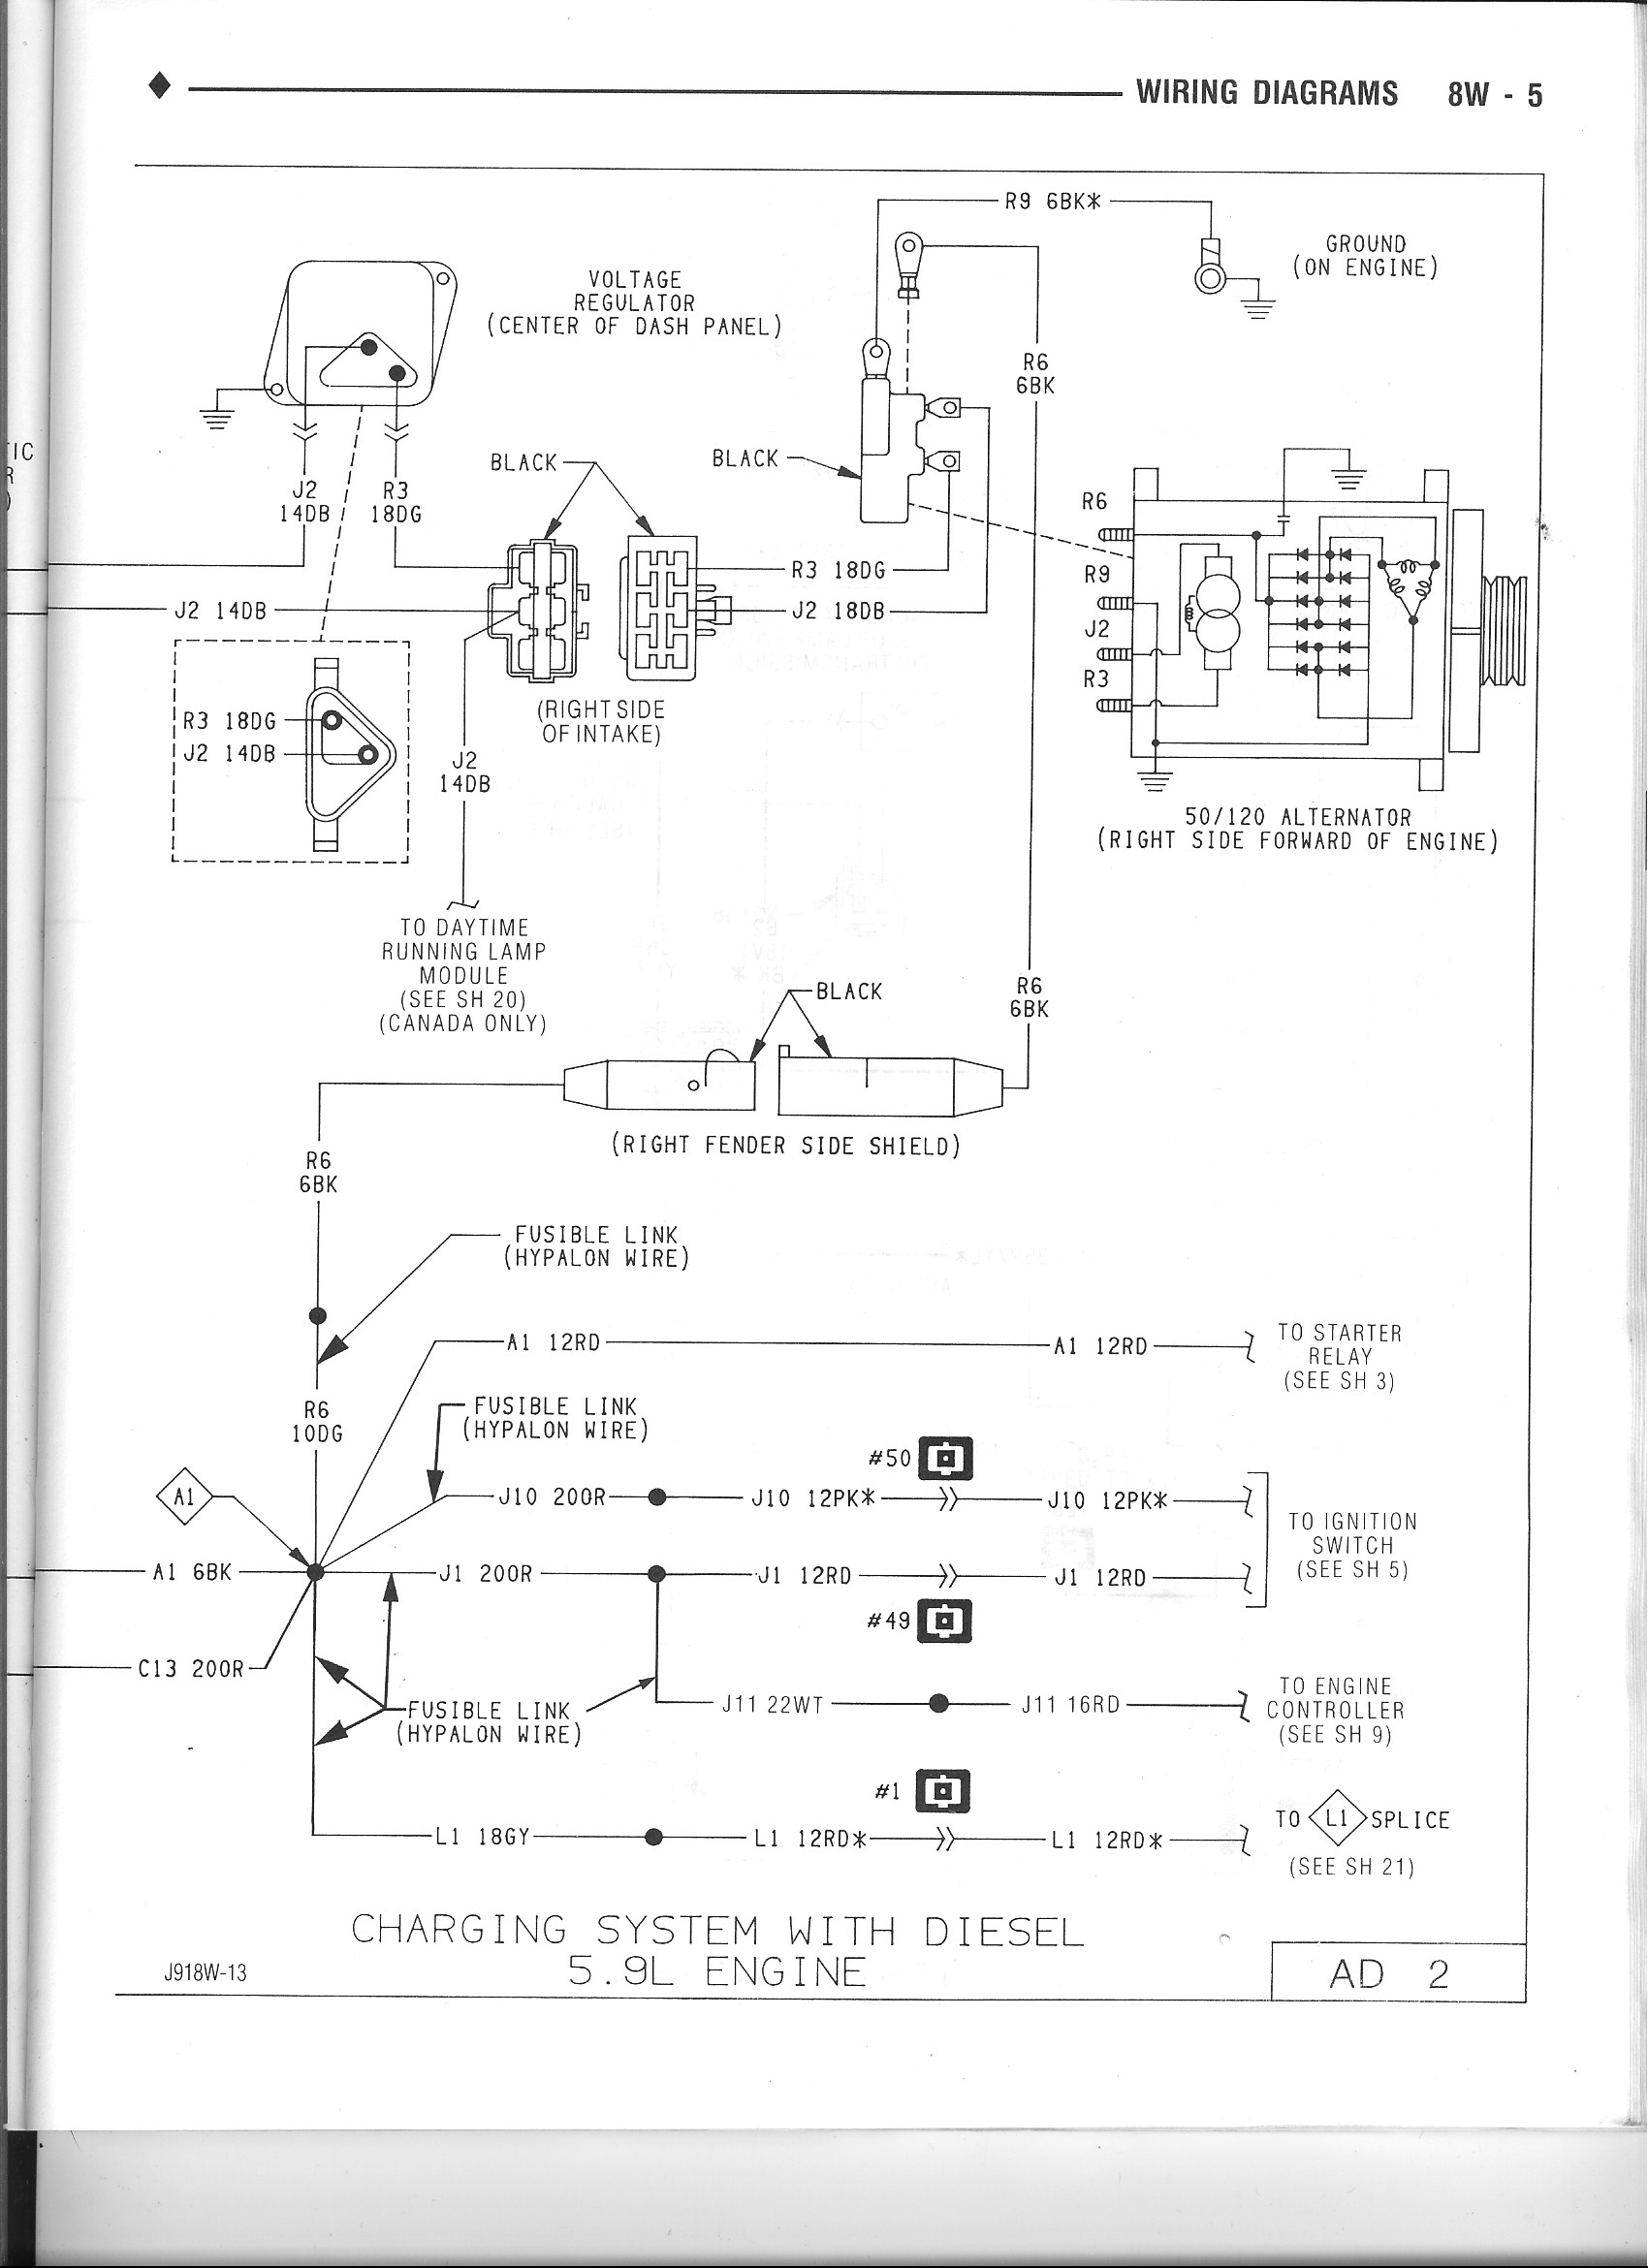 No Ground Plug Wiring Diagram 15 Amp Auto Electrical Cucv Alt Images